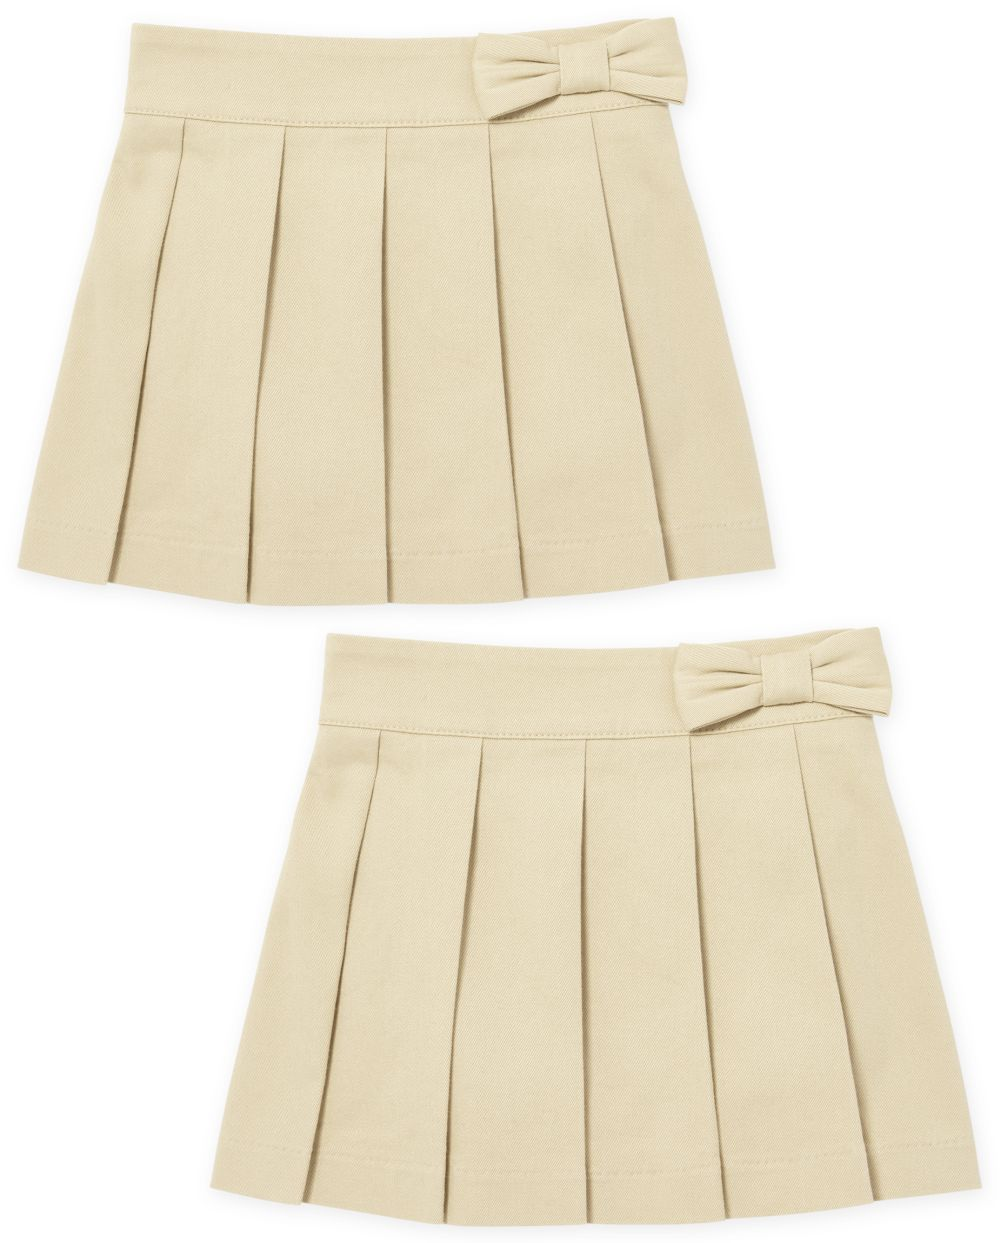 Toddler Girls Uniform Pleated Skort 2-Pack